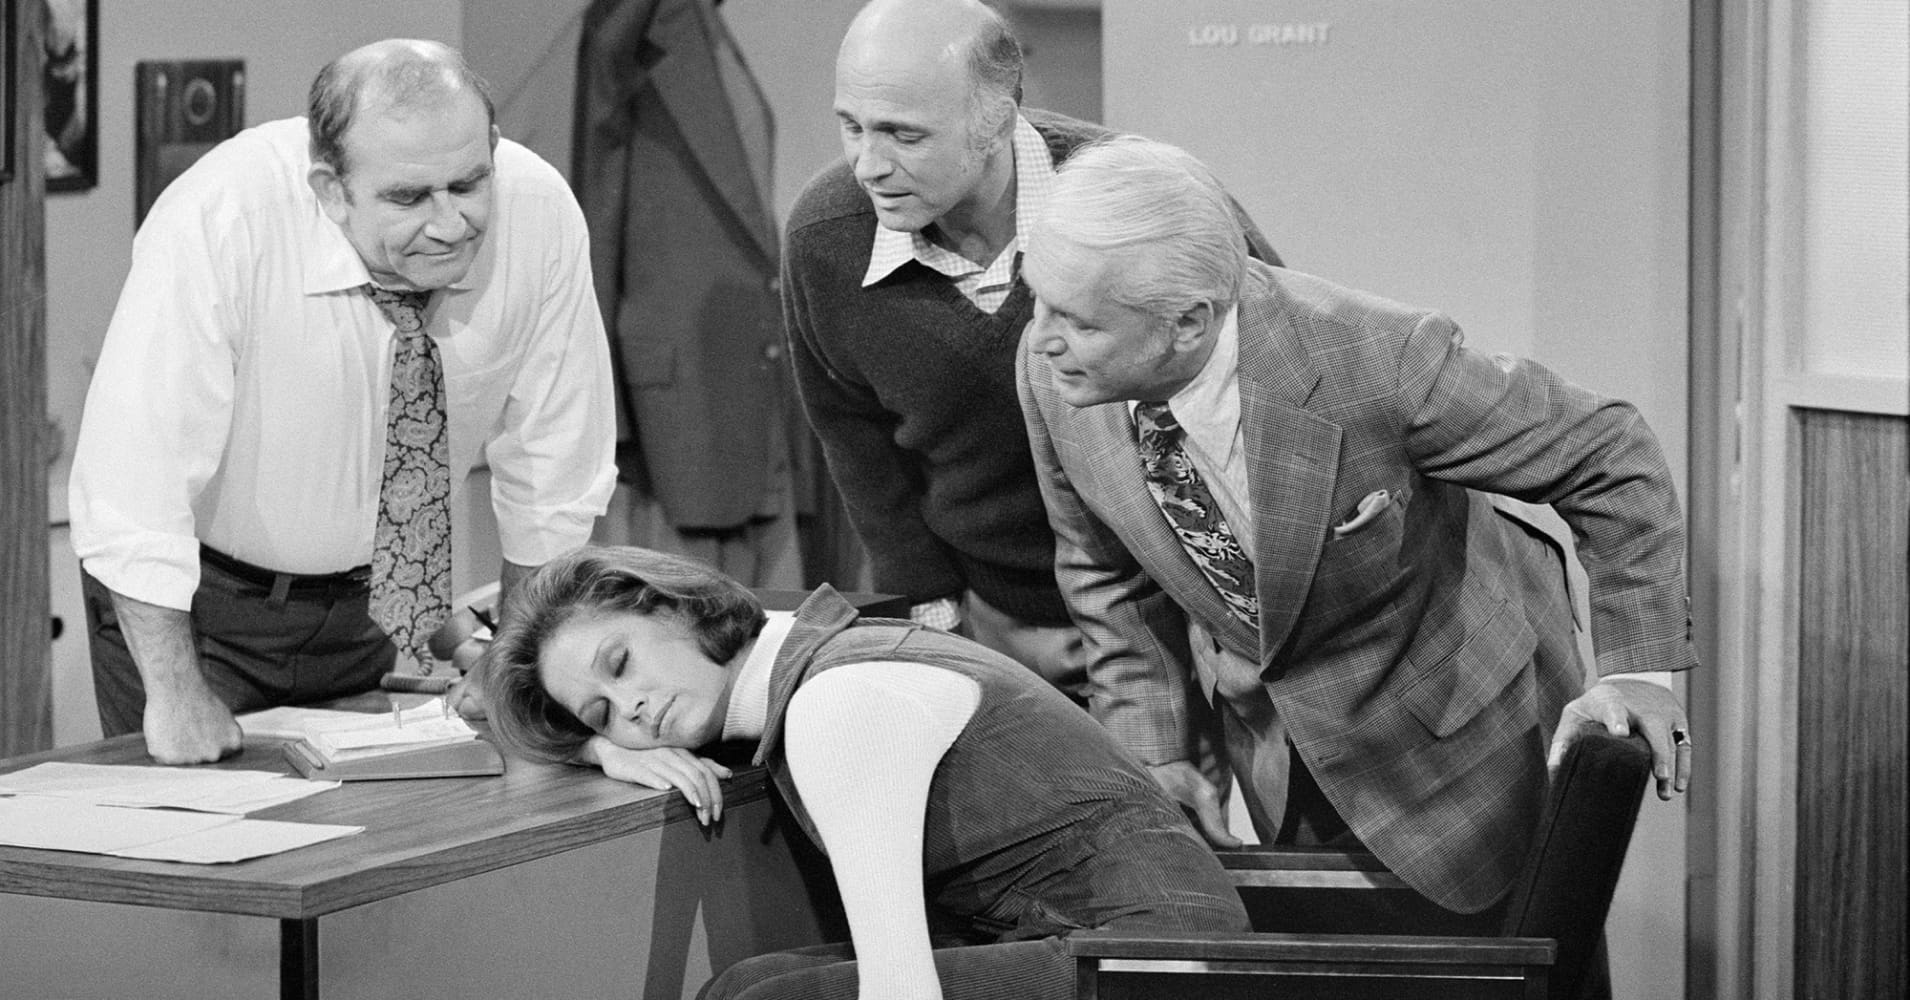 American actress Mary Tyler Moore (as Mary Richards) sleeps on a desk in a scene from the 'Mary's Insomnia' episode of 'The Mary Tyler Moore Show.'